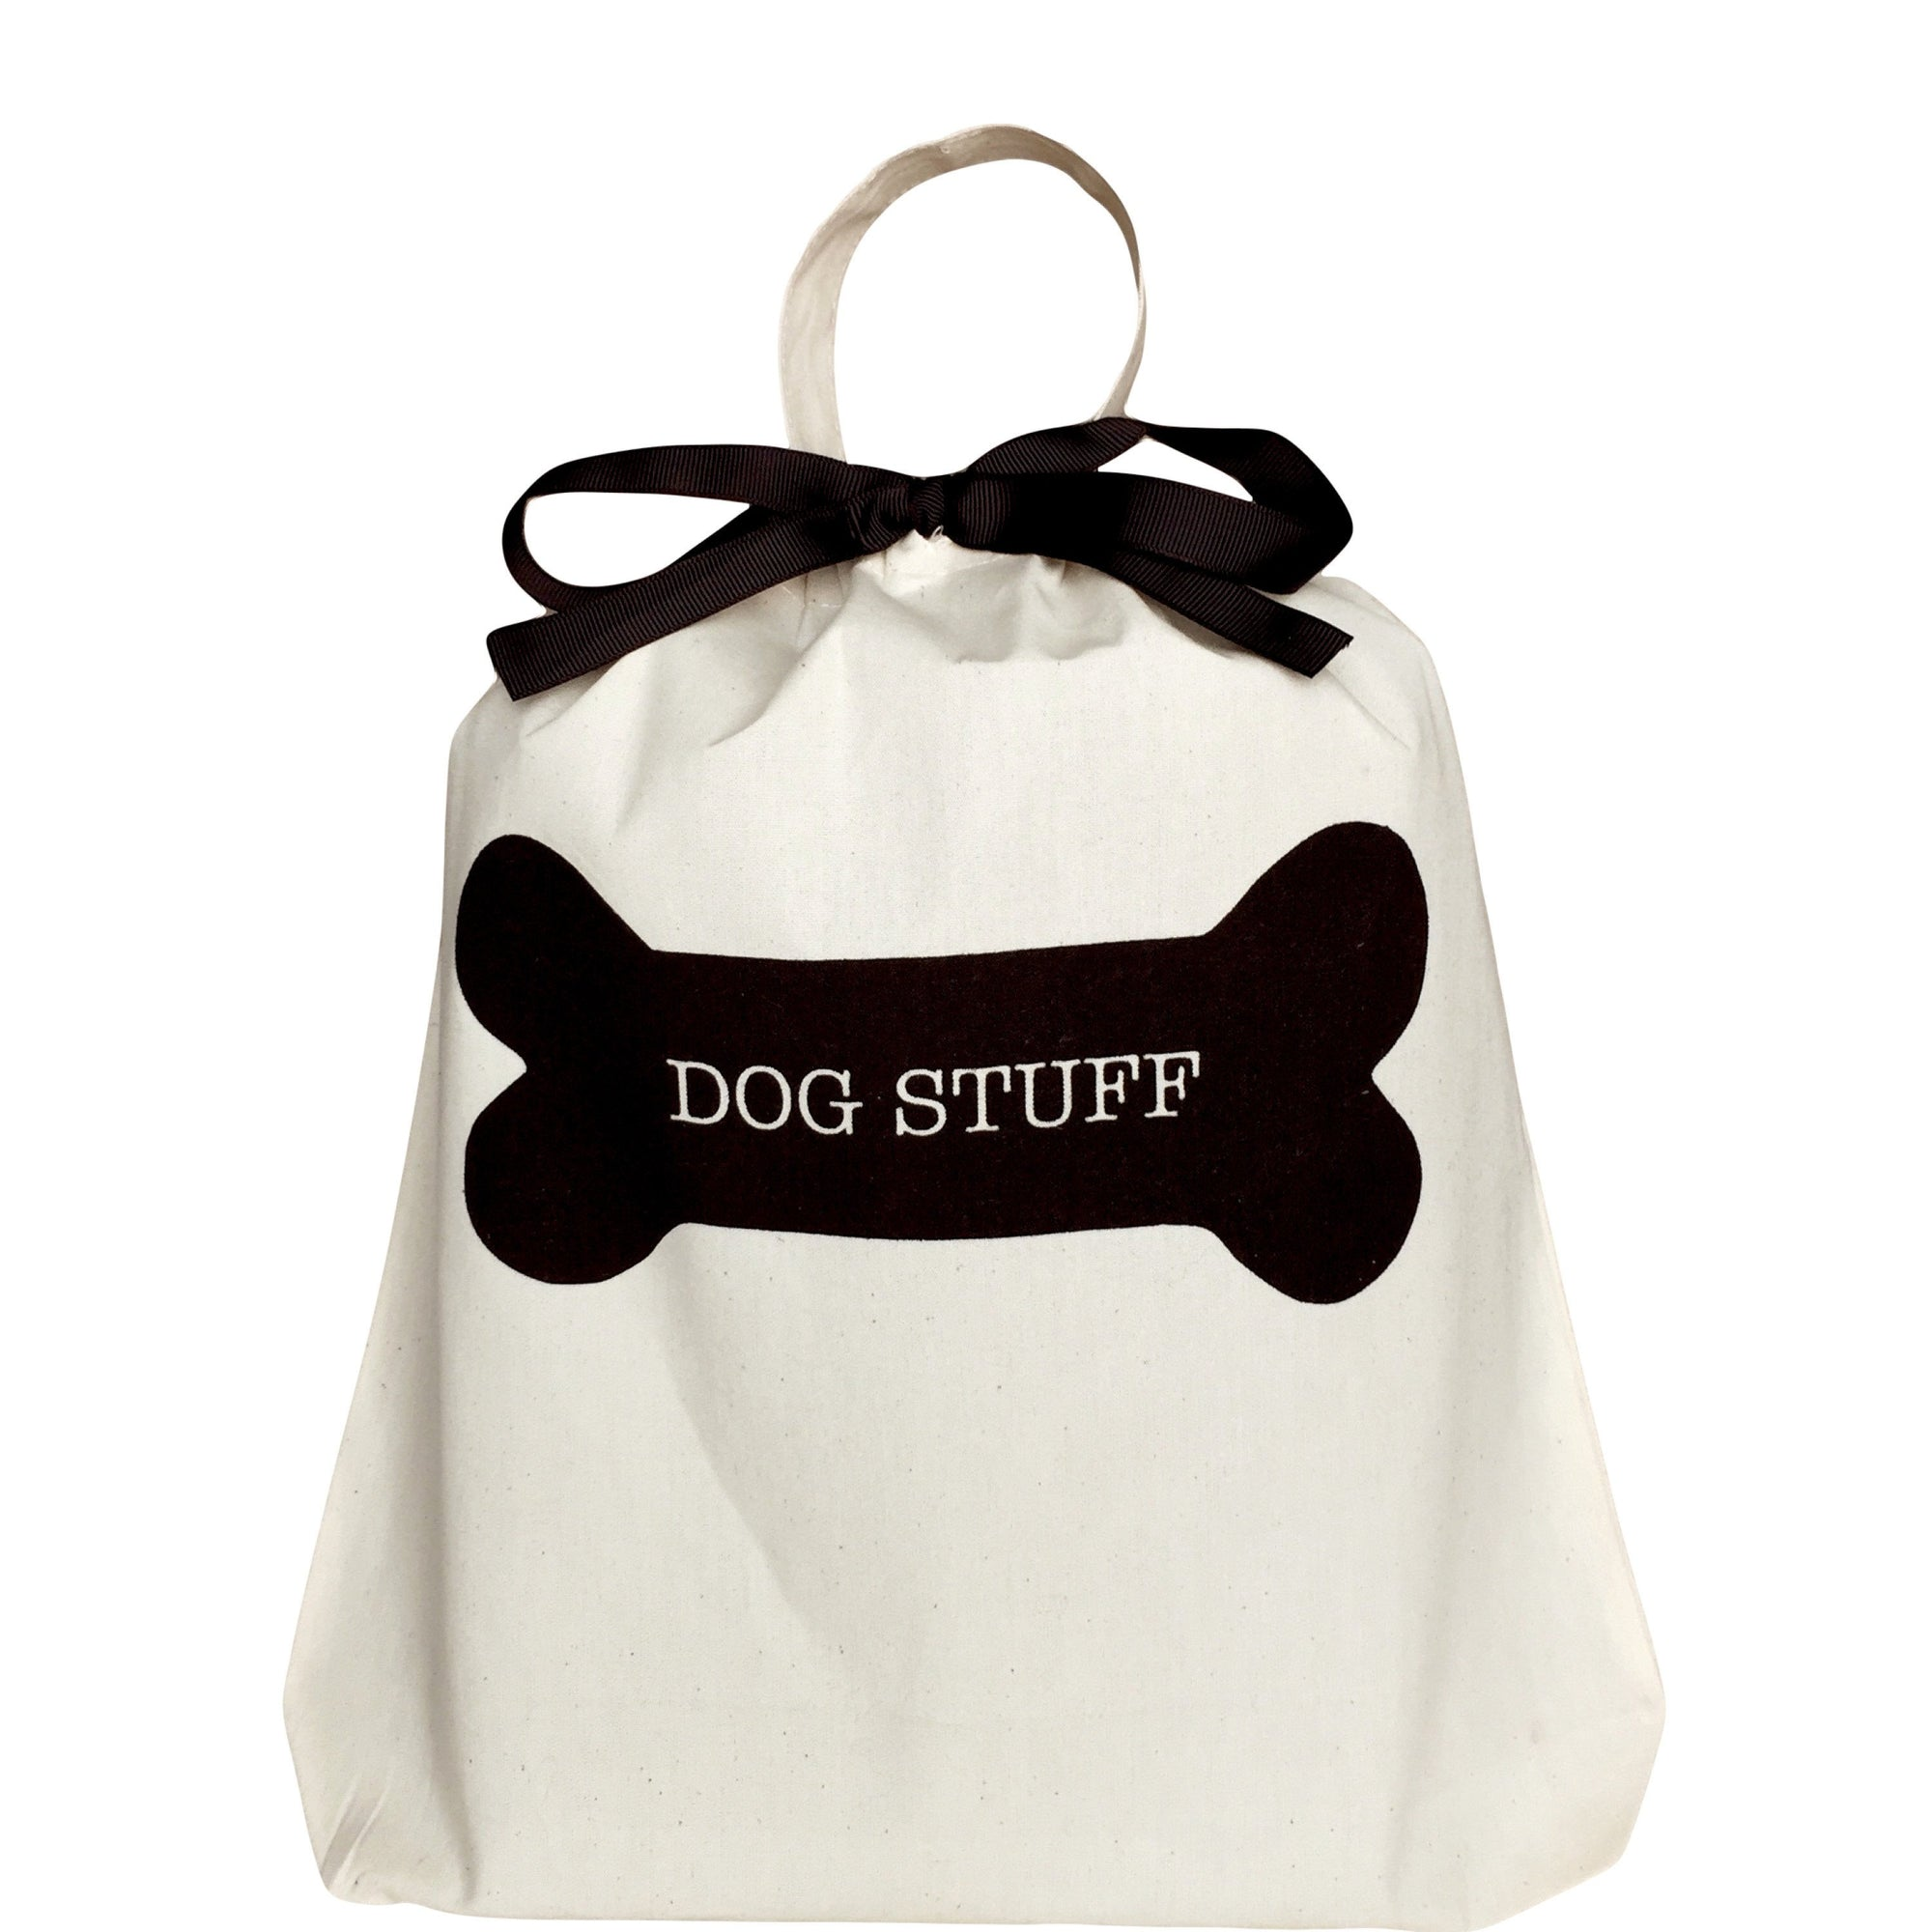 Dog Stuff - Bag-all Paris